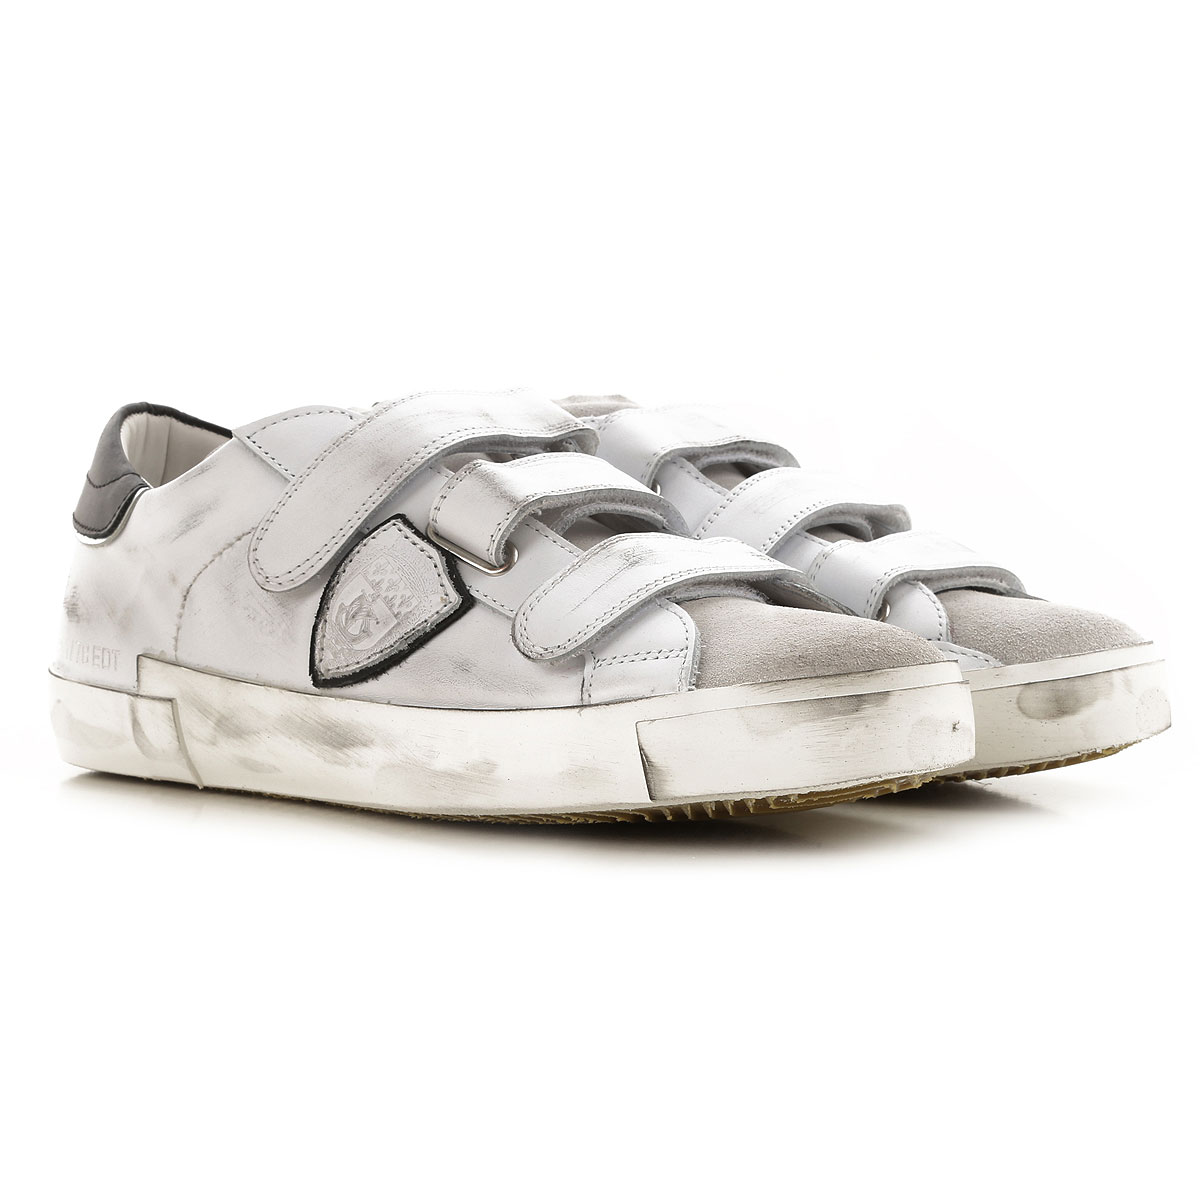 Philippe Model Sneakers for Men On Sale, Dirty White, Leather, 2019, 10 10.5 11.5 7.5 8 9